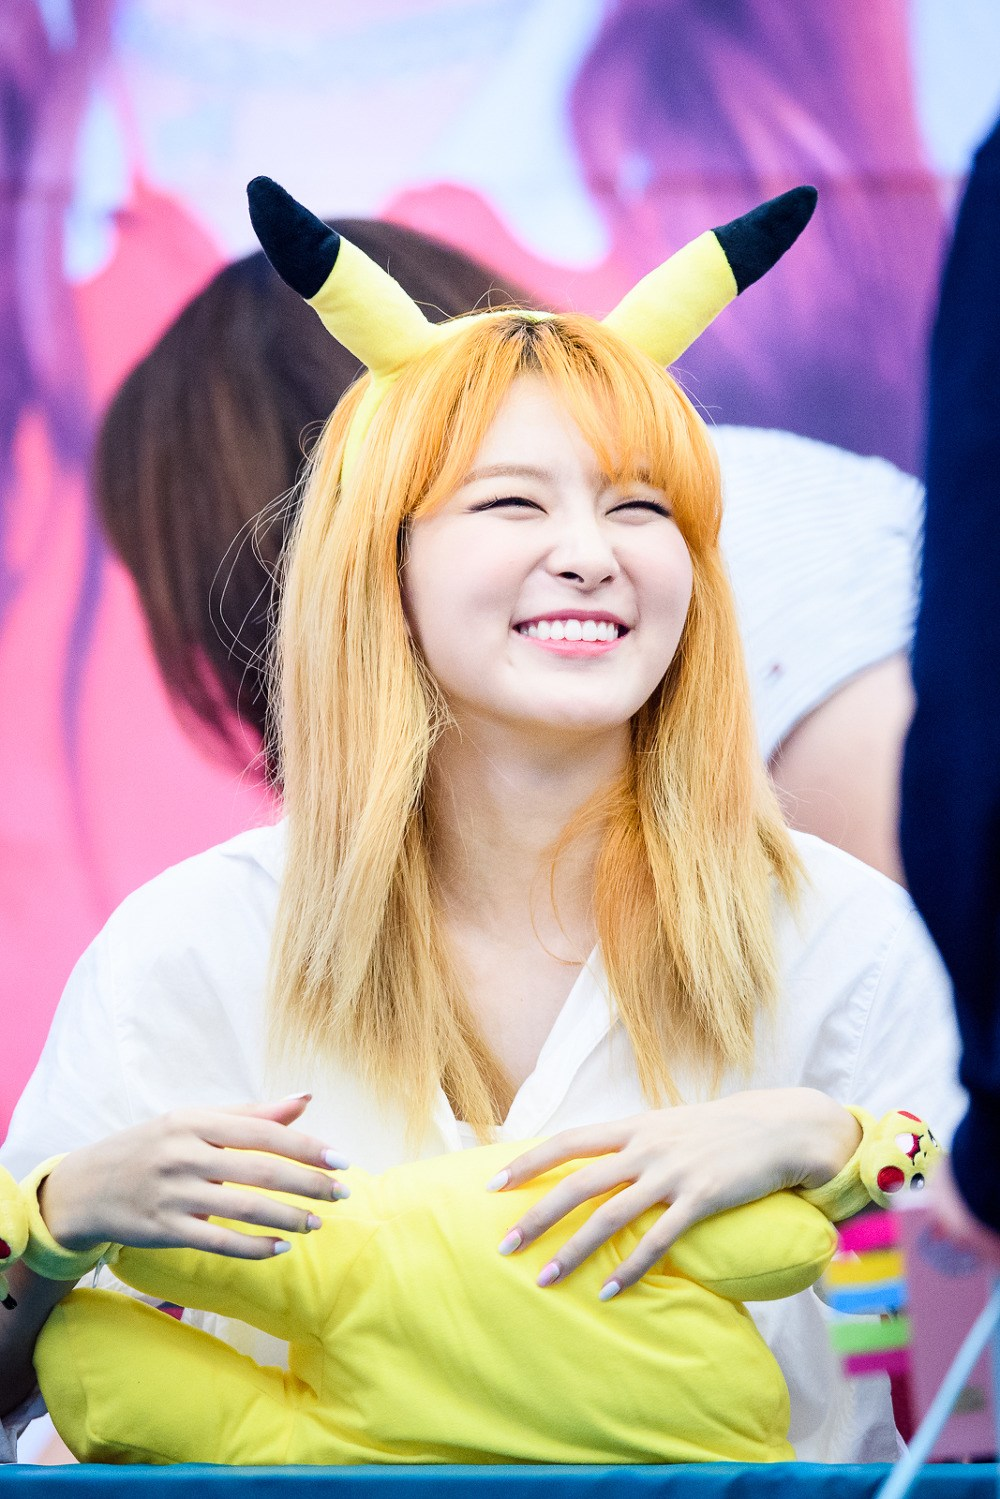 Red Velvet's Seulgi at a fan signing. // Source:Gallrof